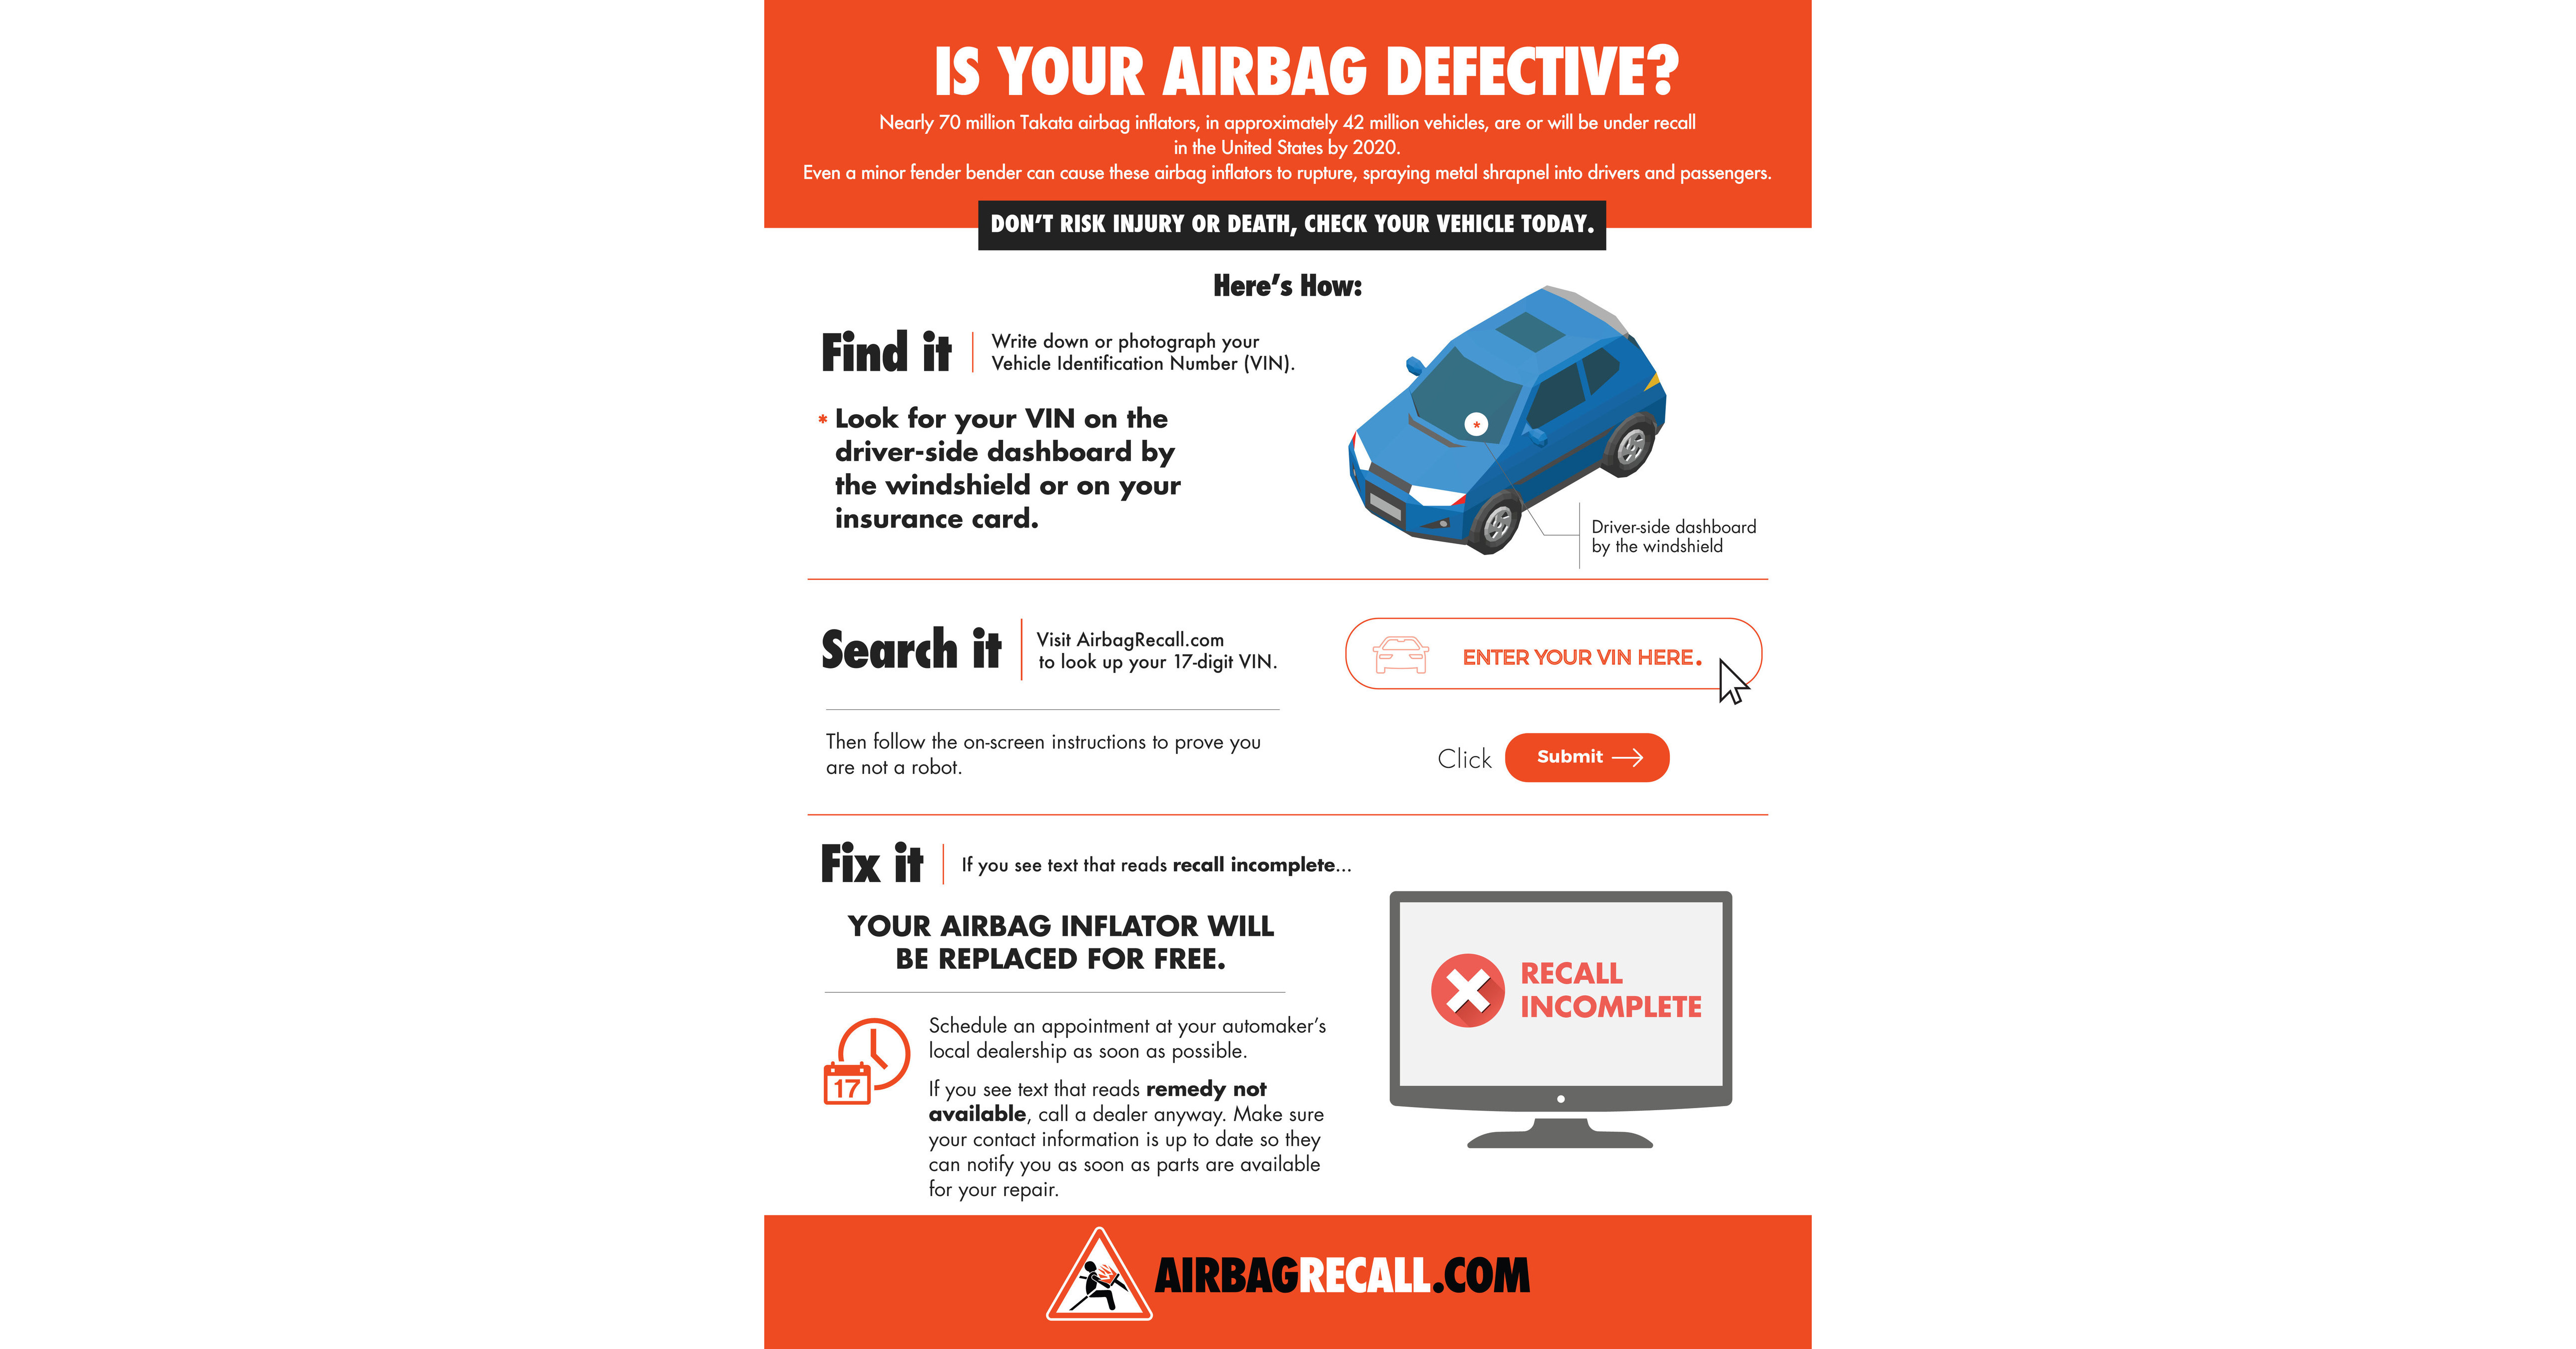 More than one million defective airbag inflators remain unrepaired in southern california